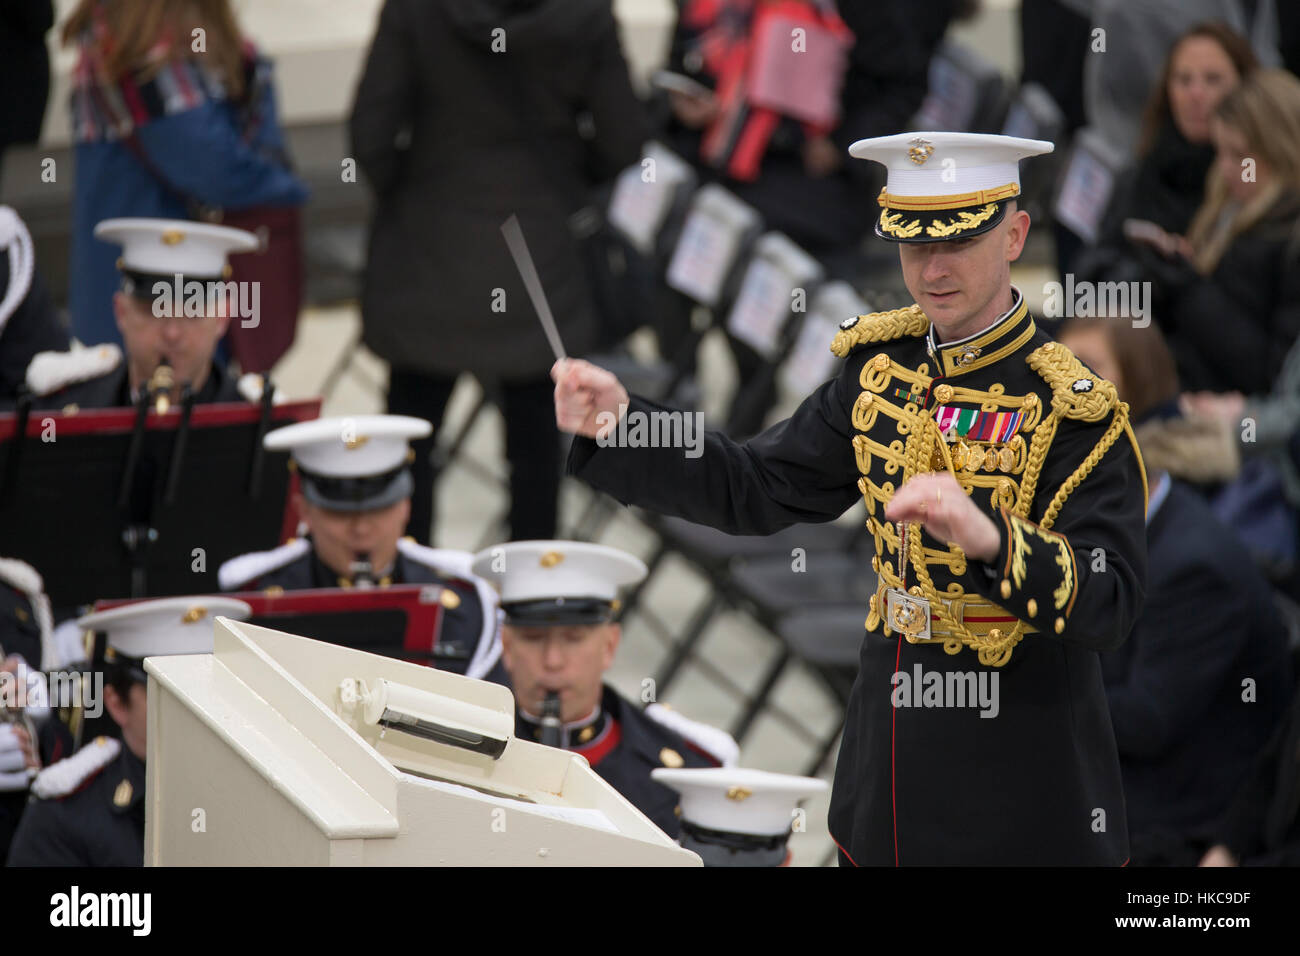 The U.S. Marine Corps Band plays music during the 58th Presidential Inauguration at the U.S. Capitol Building January - Stock Image